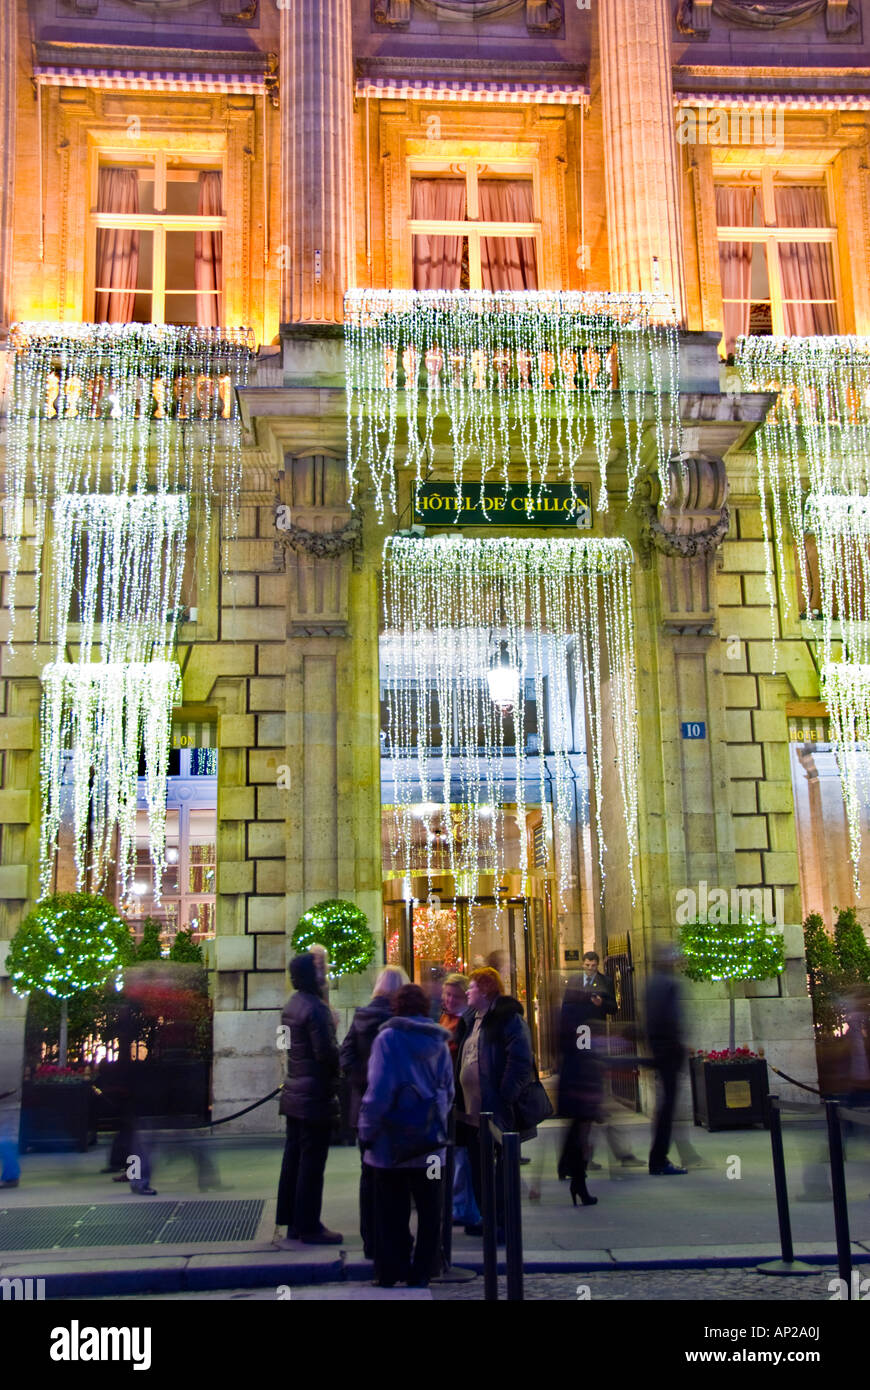 paris france people enjoying lights deluxe hotel hotel de crillon lit up with christmas decorations at night front entrance